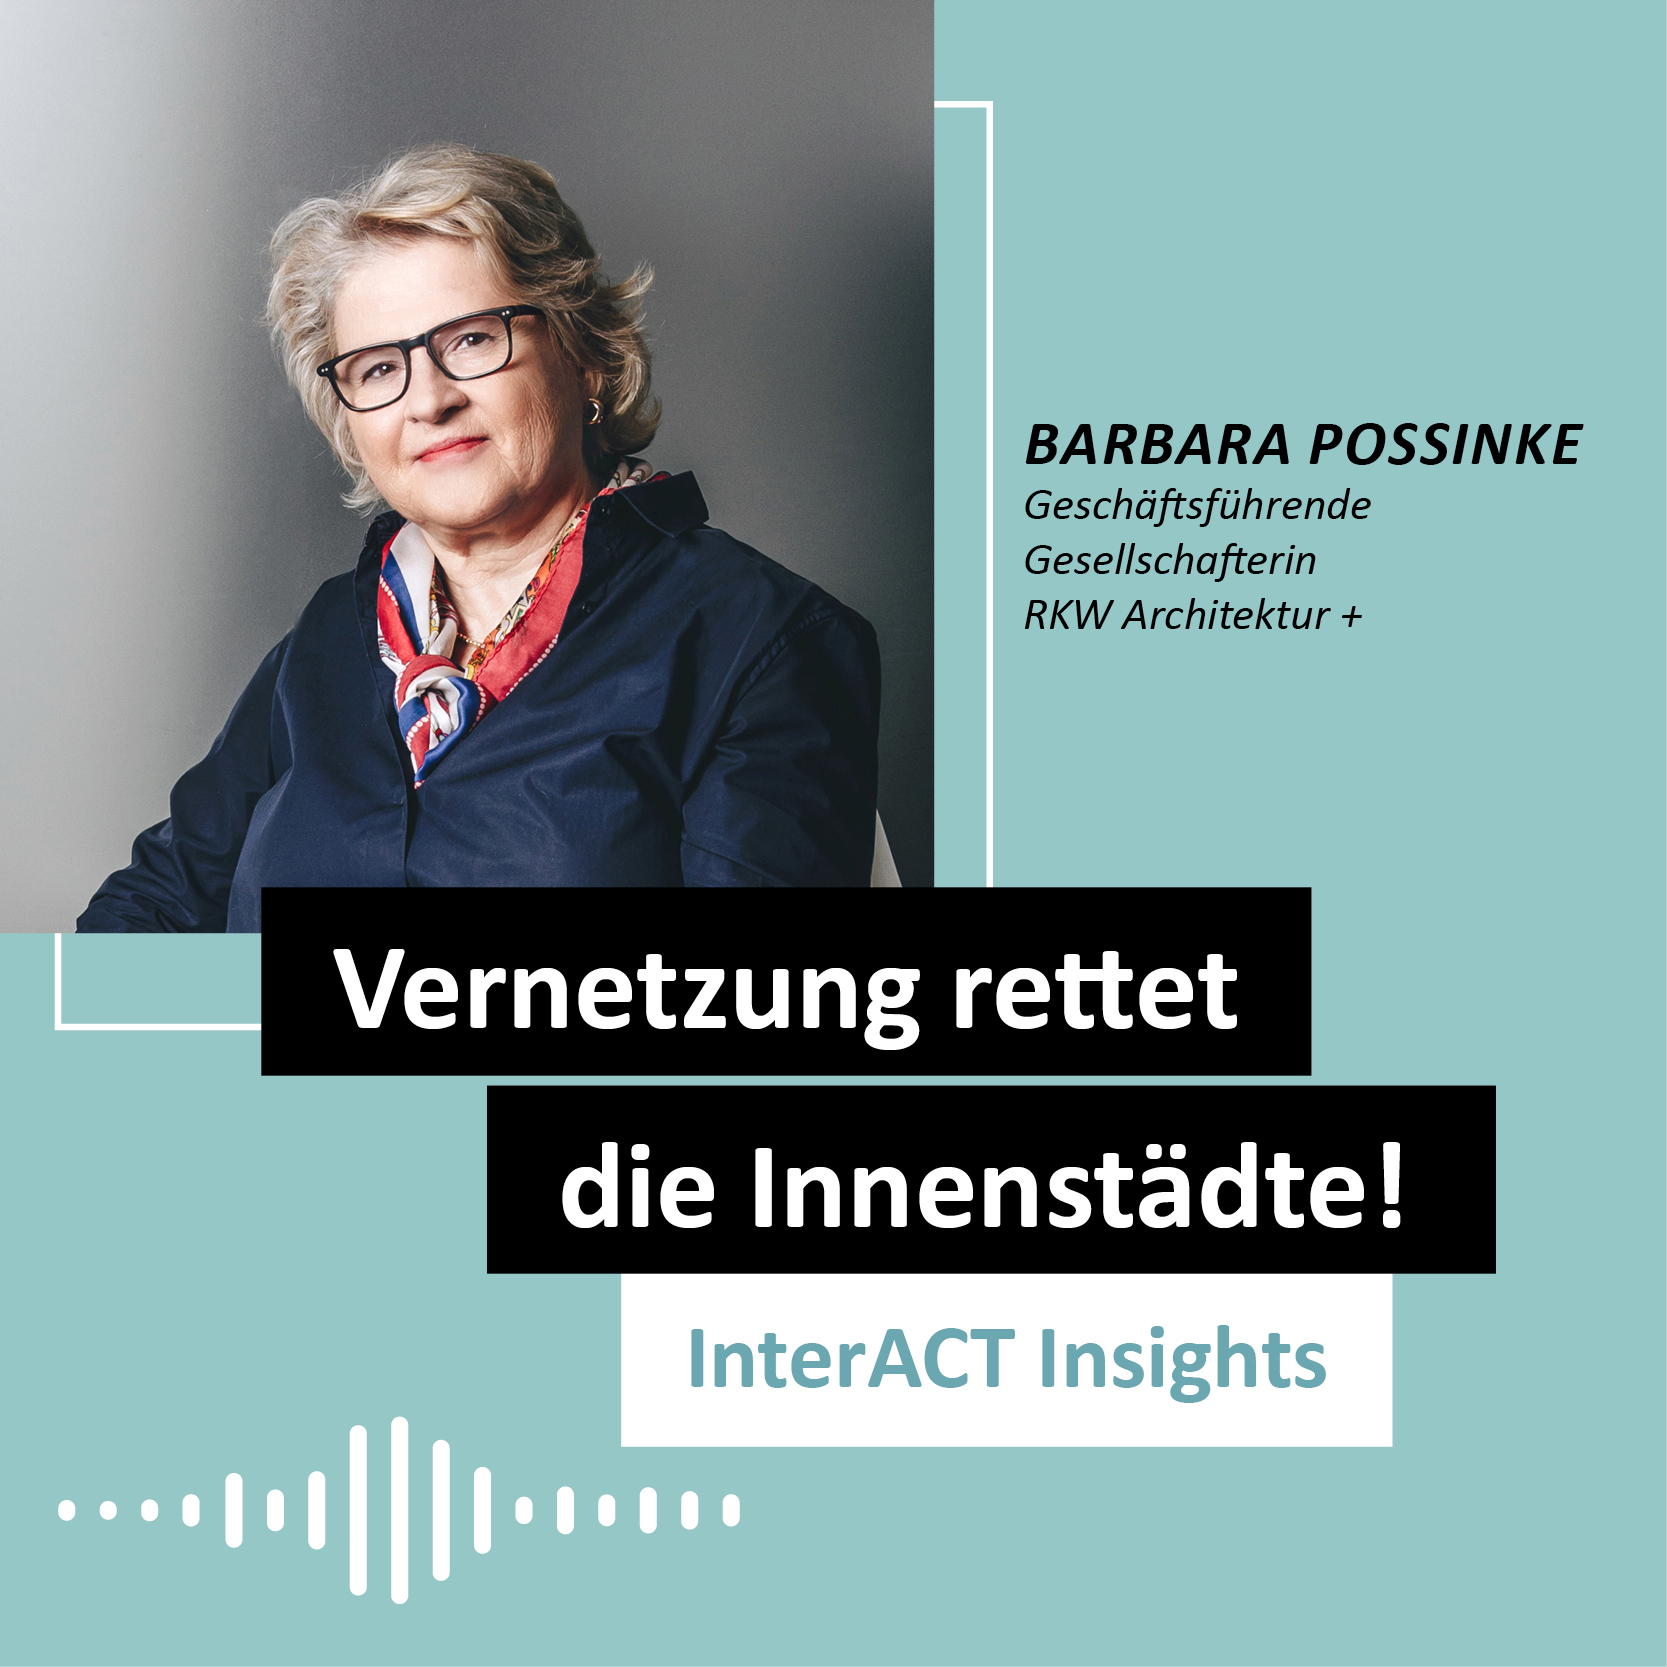 Barbara Possinke